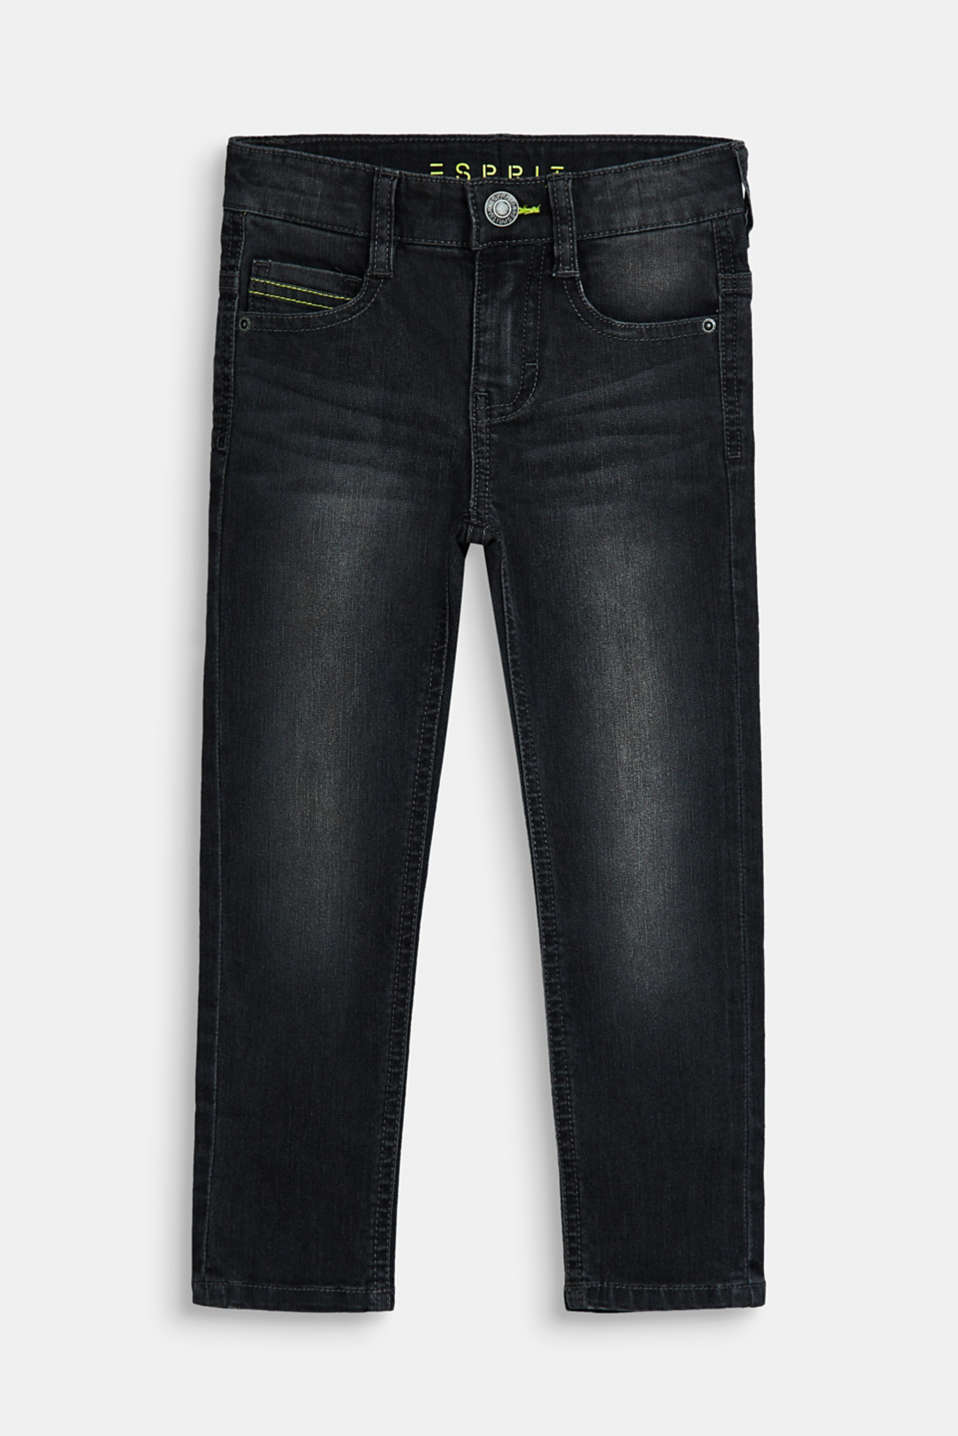 Esprit - Stretch jeans with contrasting stitching, adjustable waist